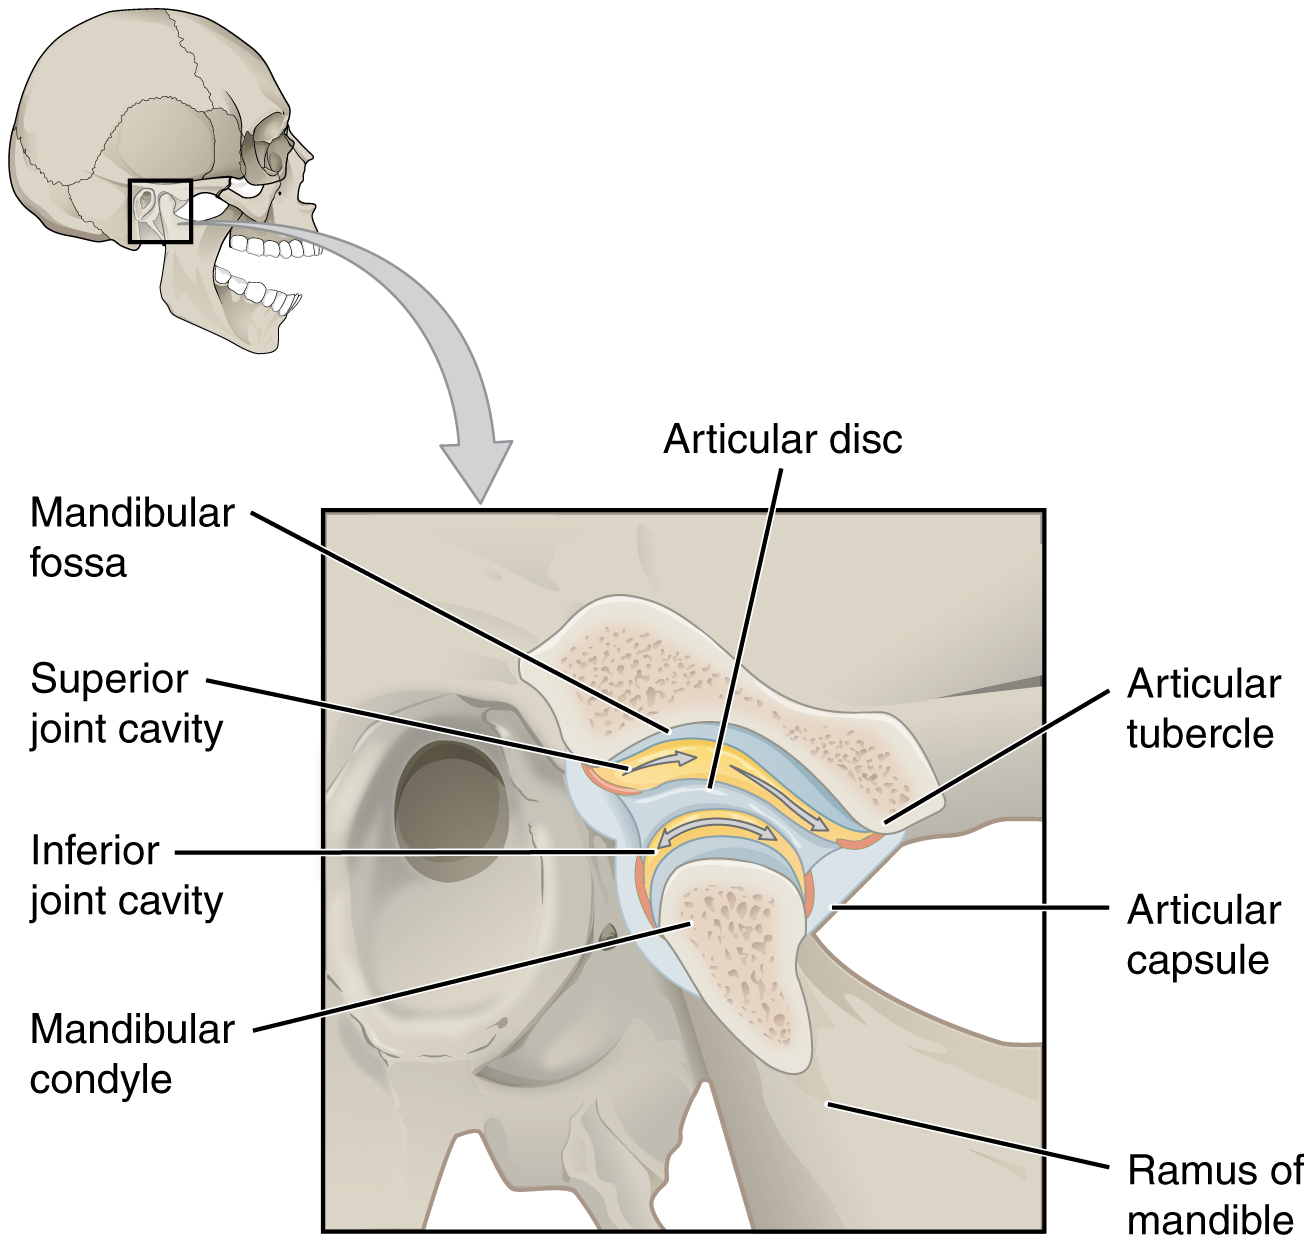 This figure shows the location and structure of the temporomandibular joint. On the top right, a lateral view of the skull is shown and the tempomandibular joint is highlighted in grey. A magnified view shows the structure of the joint with the main parts labeled.